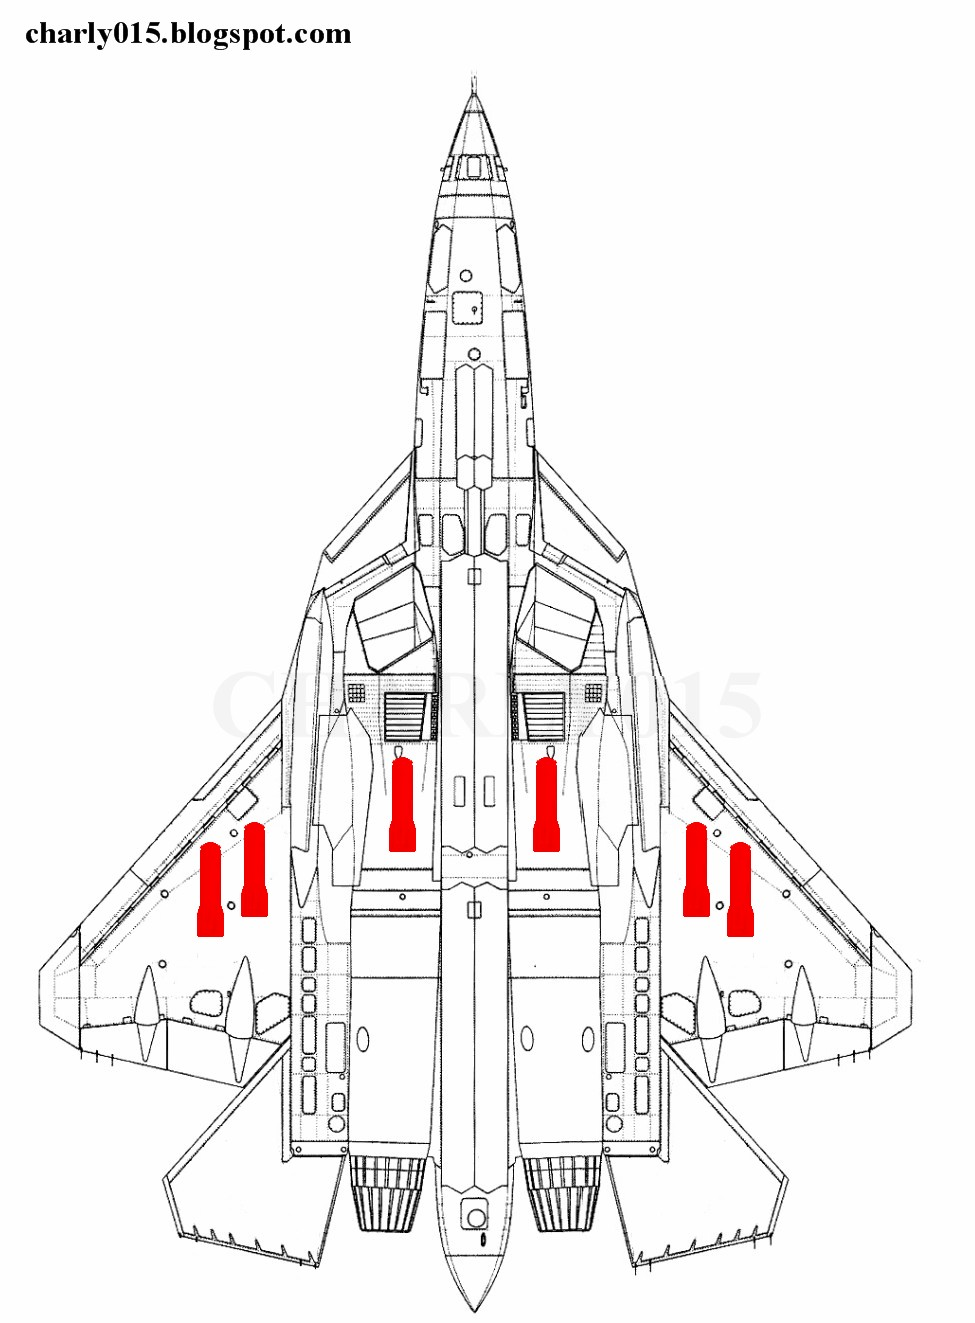 3 Modern Aircraft Cutaway also 417 Orlik 093 Samolot Sukhoi Pak Fa T 50 1 in addition Spanking Smiley together with 28006828905089986 together with Propeller Hub For F4u Corsair 1 6m Rc Warbird Airplane Smlxf4u 22. on sukhoi pak fa